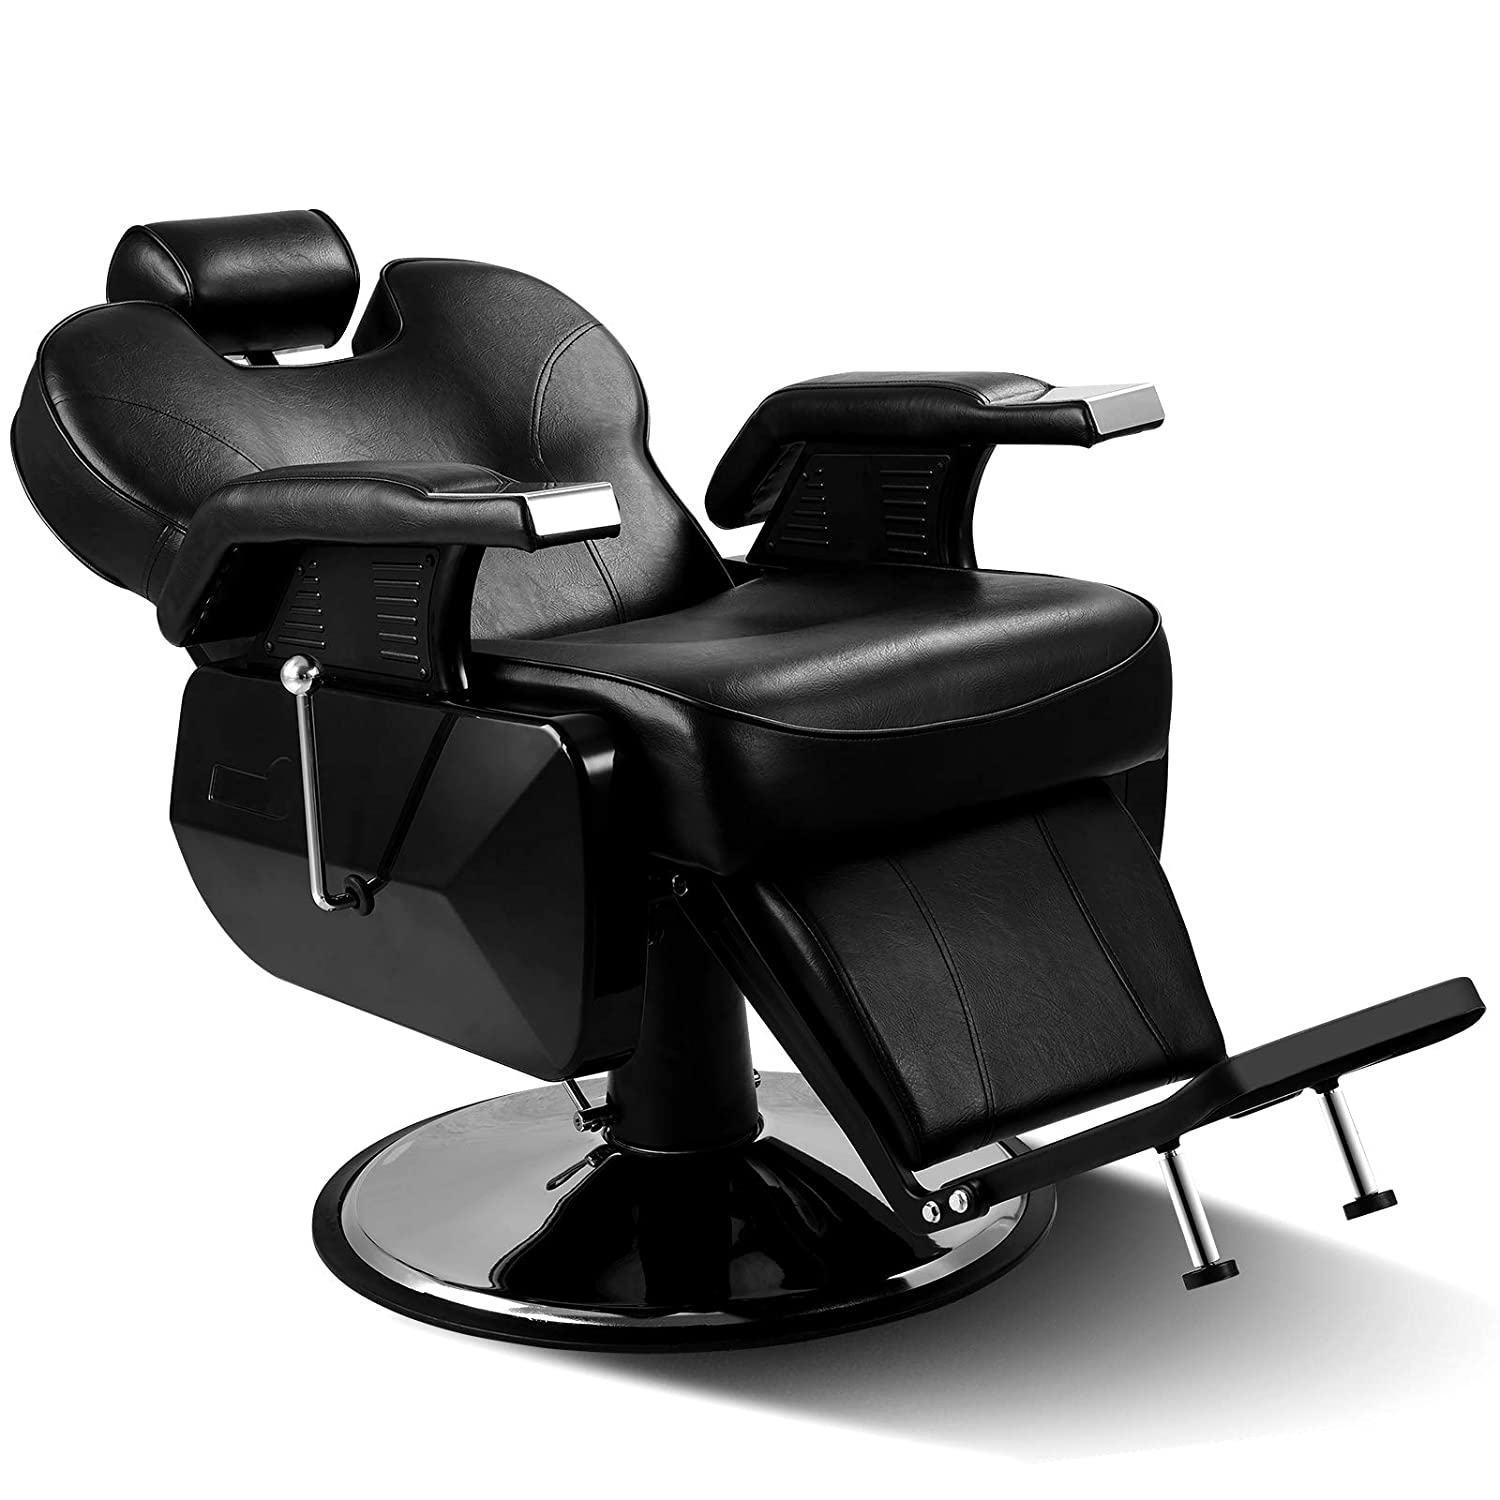 Artist Hand All Purpose Hydraulic Reclining Barber Salon Chair review